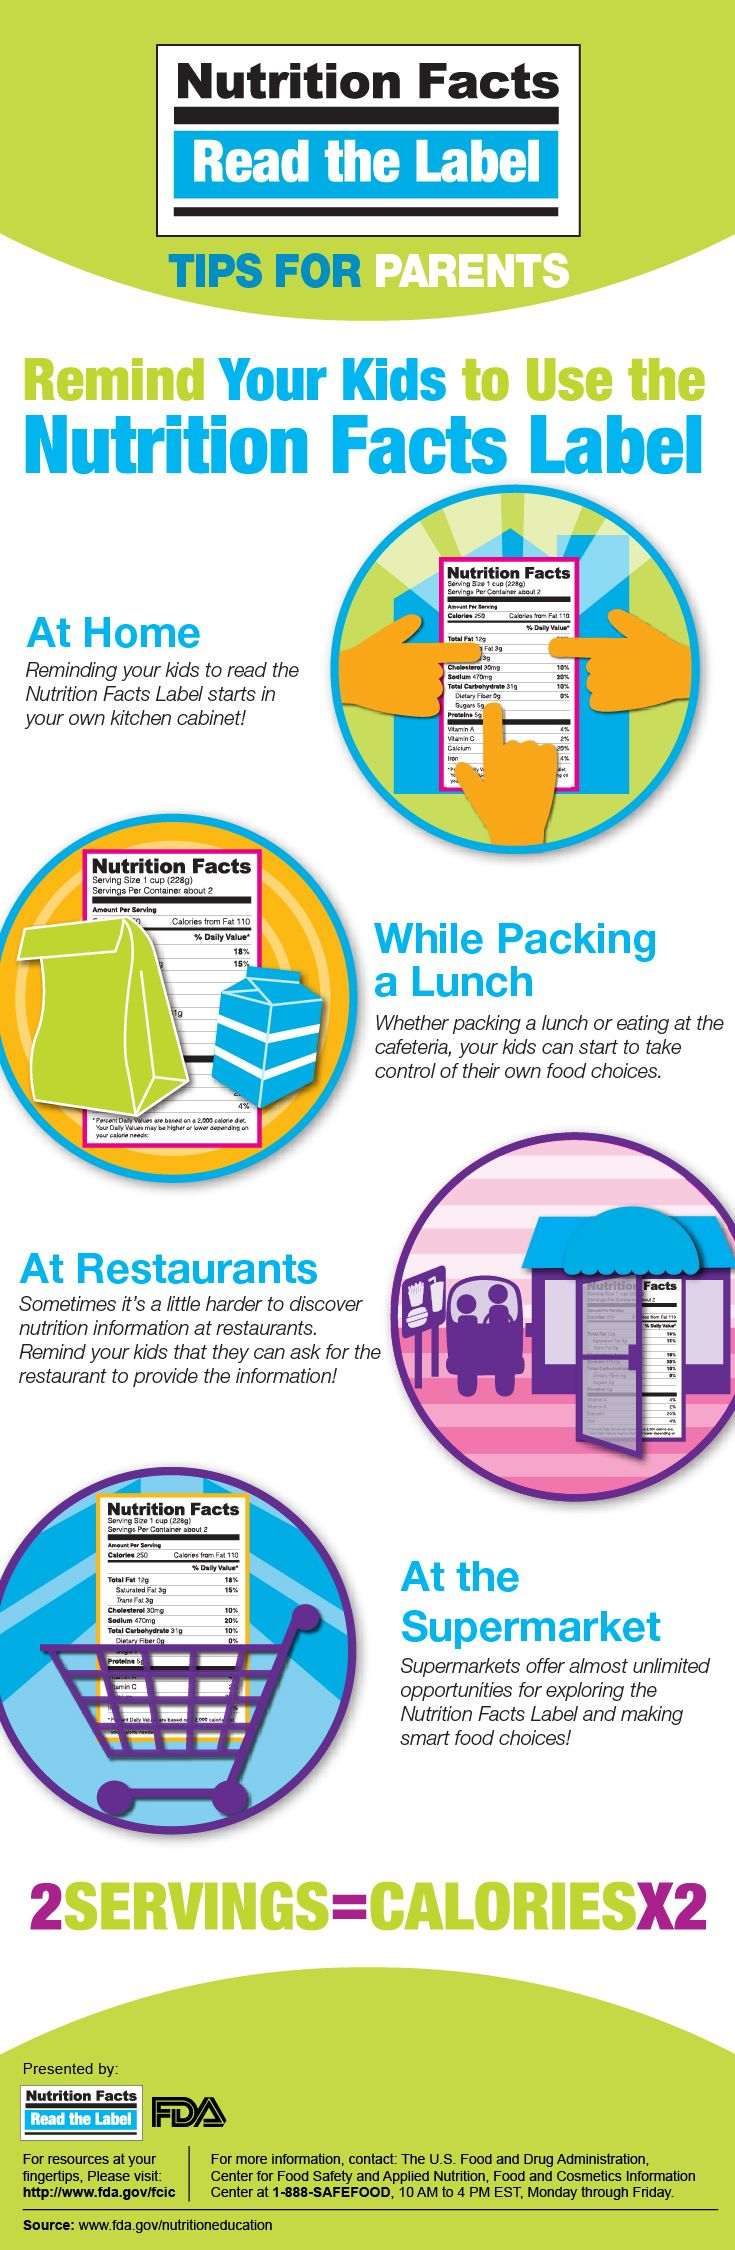 11 best nutrition facts label images on pinterest food labels outreach campaign includes fun tips and activities that help kids ages 9 to understand and use the nutrition facts label to make healthy food choices forumfinder Gallery